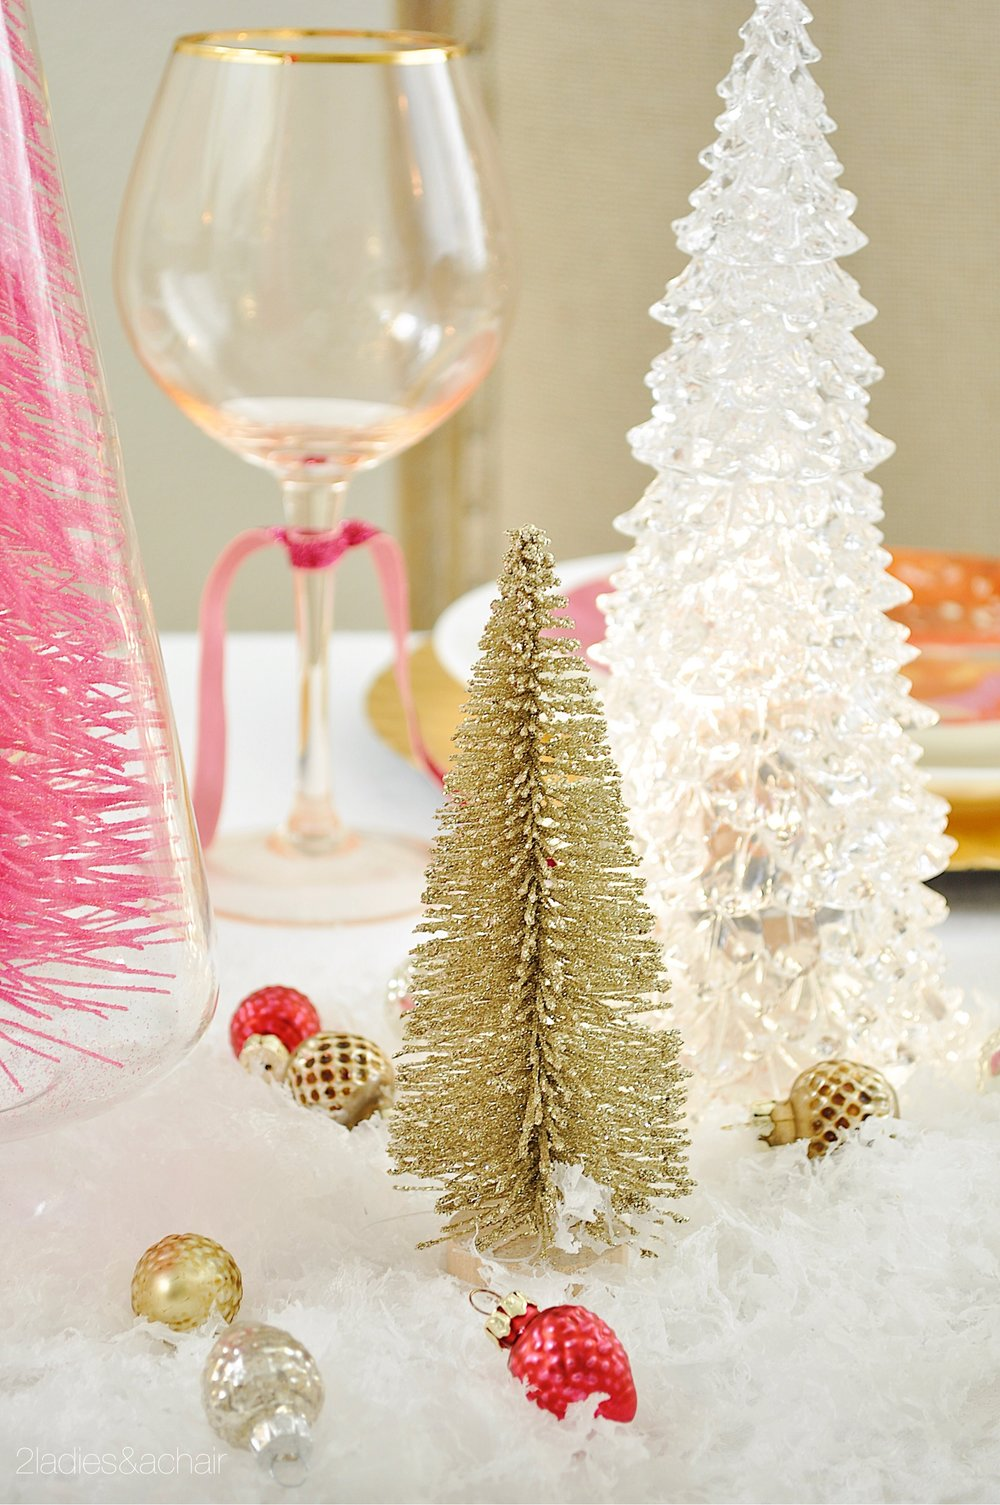 christmas tablescape ideas IMG_8702.JPG